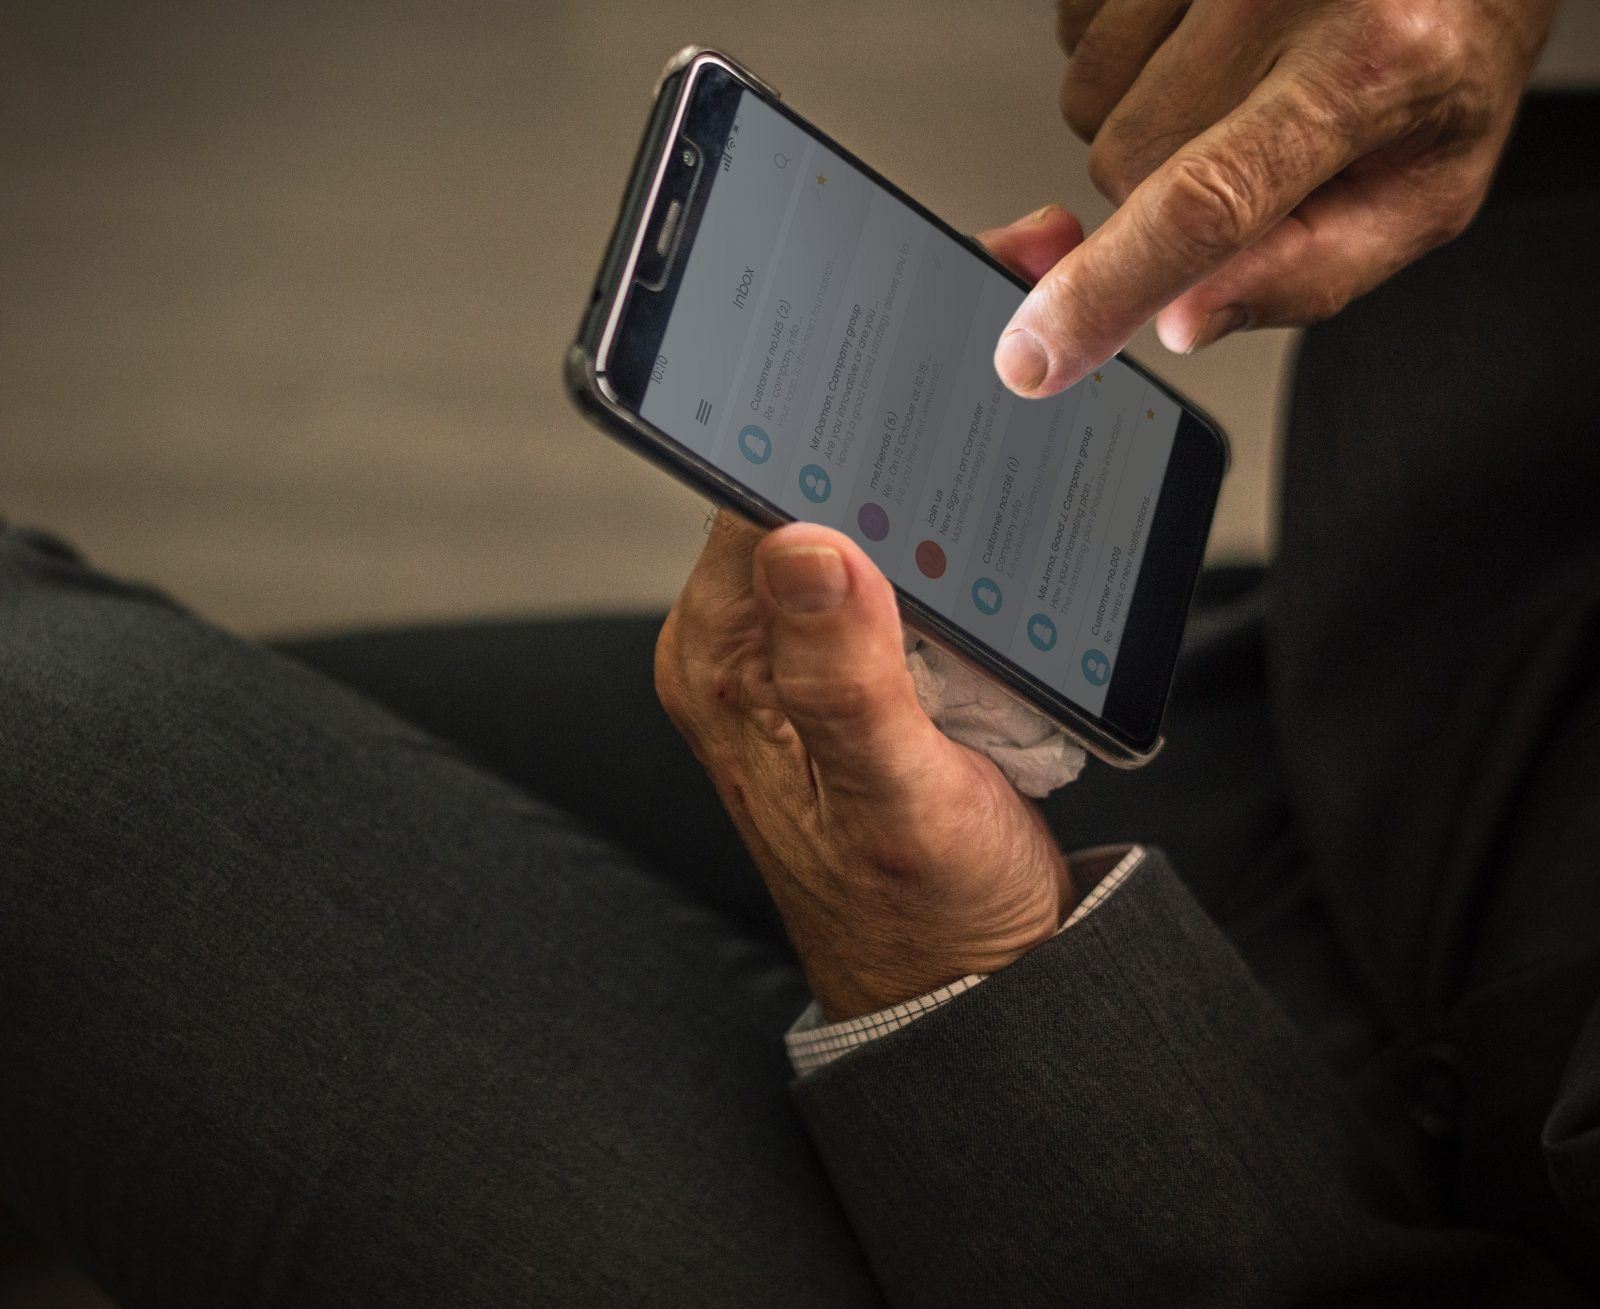 Man checking emails on smartphone